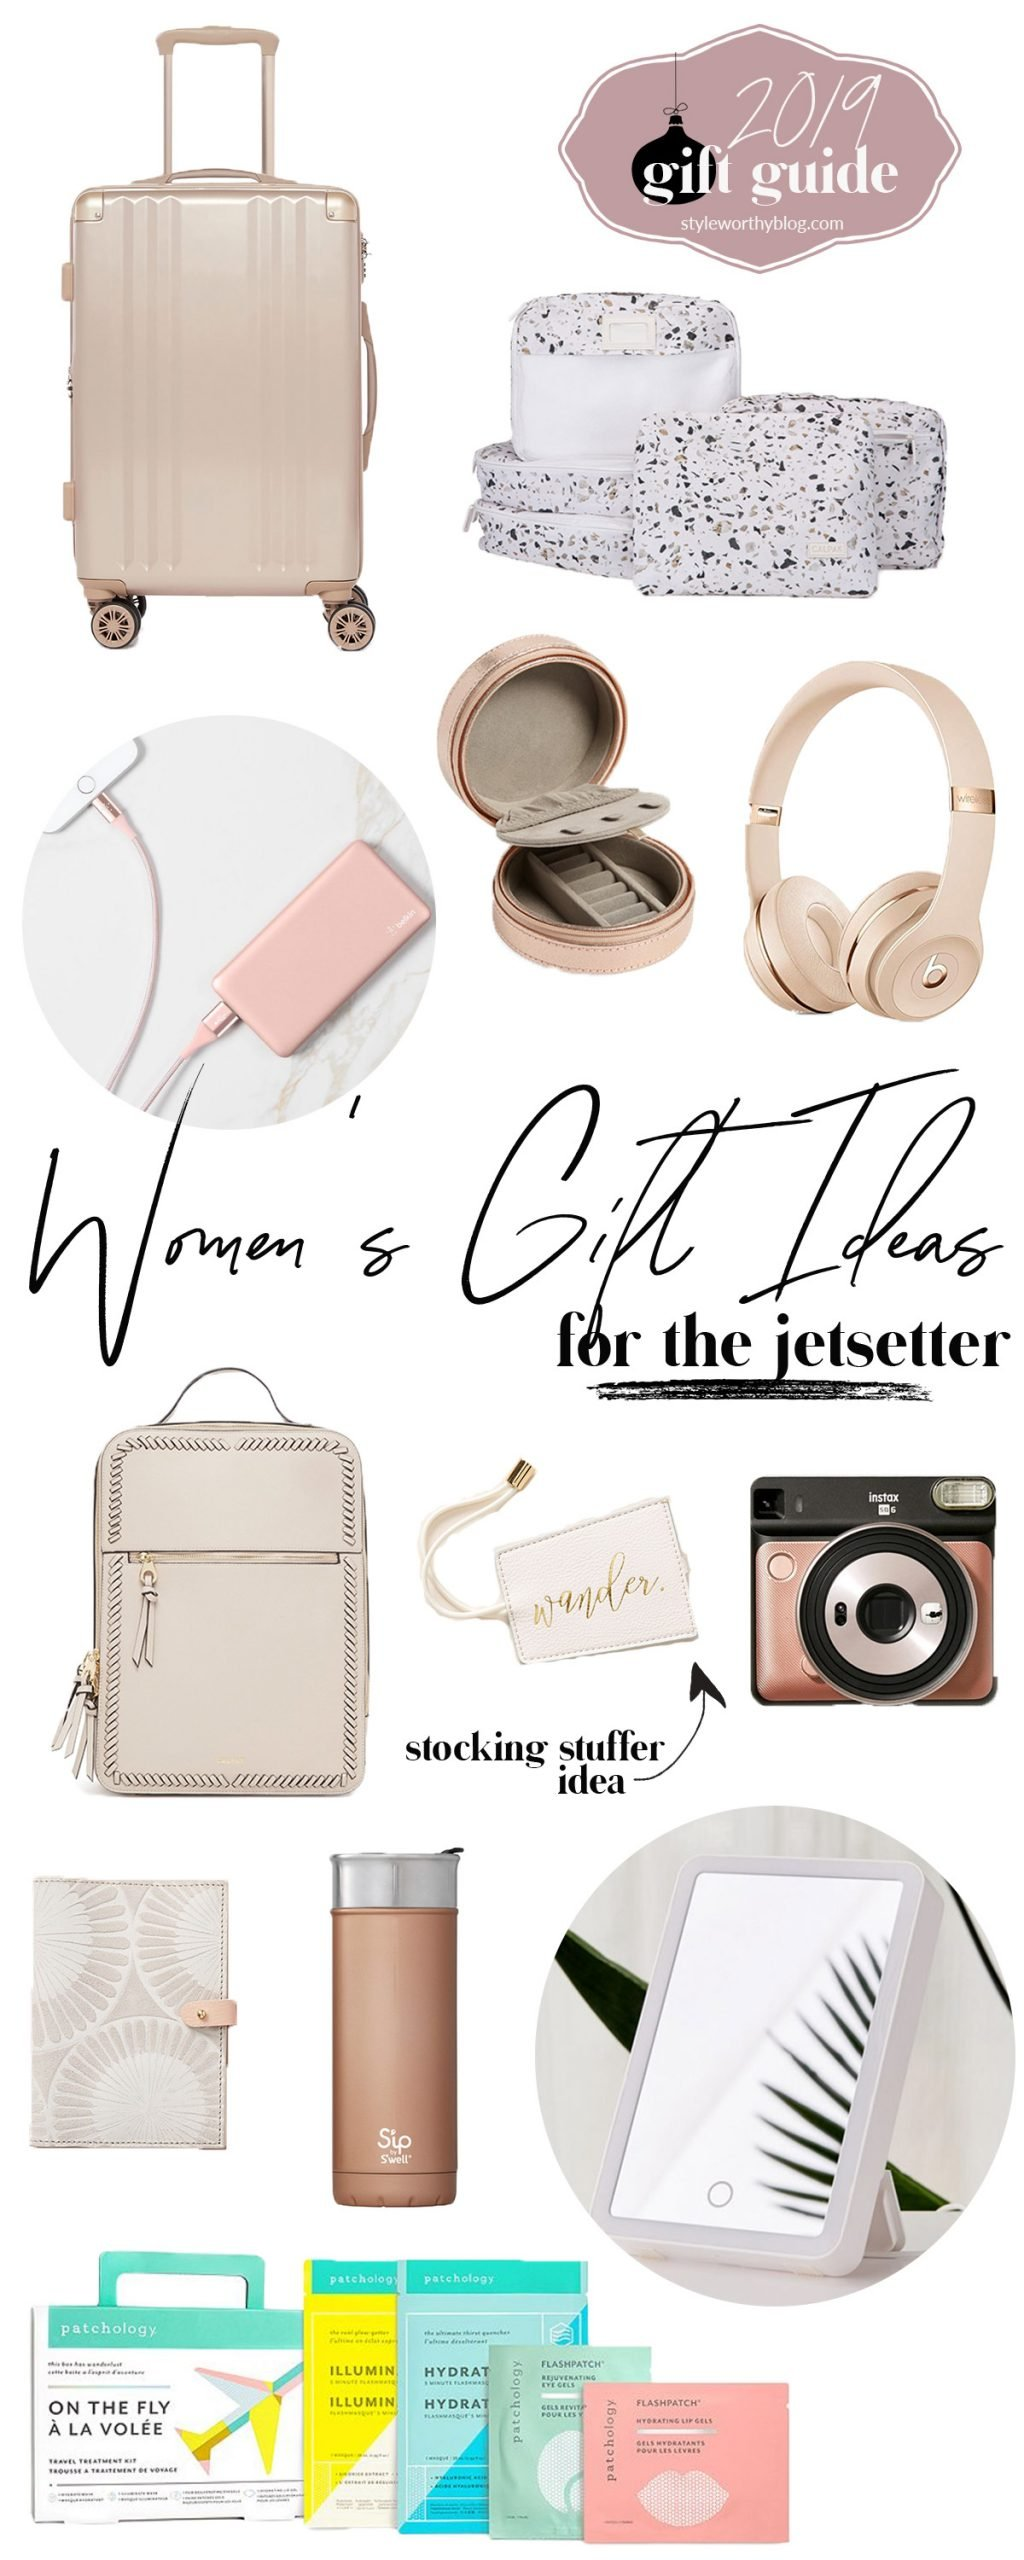 Women's gift guide. Gift ideas for the Jetsetter